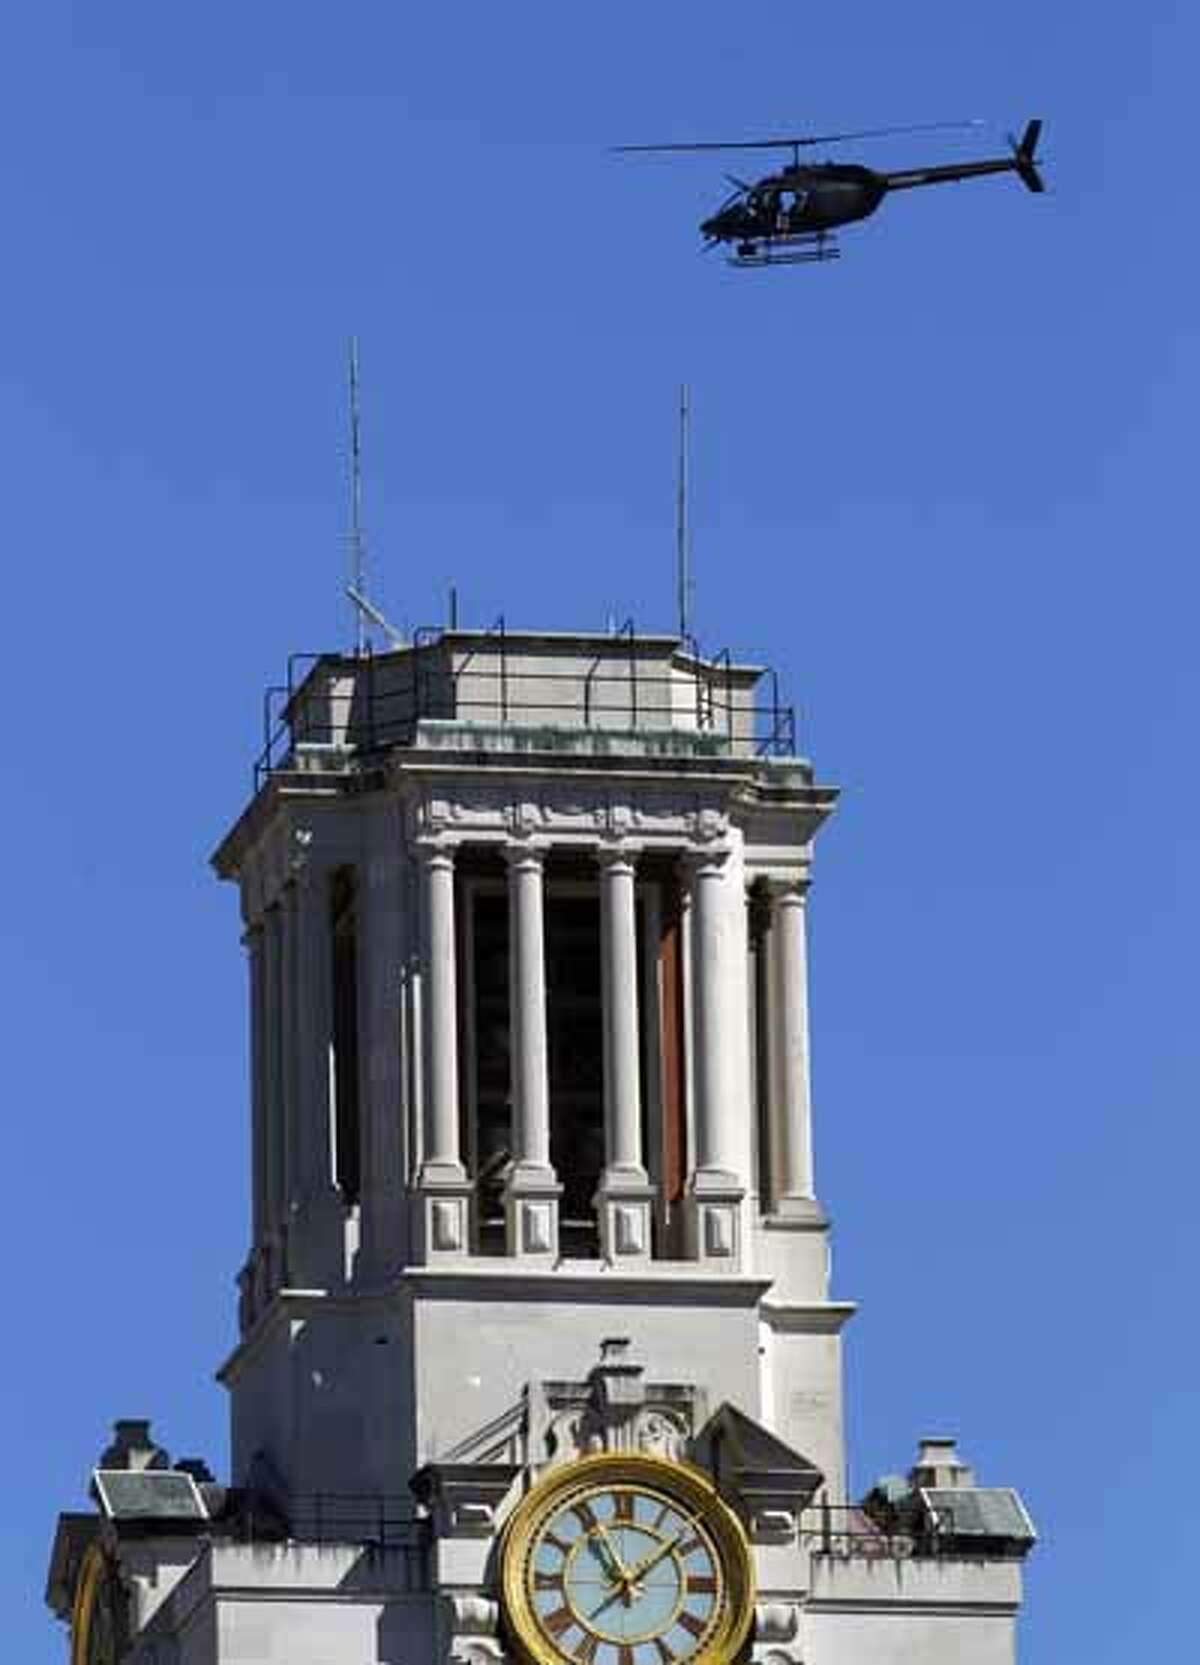 A police helicopter flies over the University of Texas clock tower. Helicopters flew back and forth over the campus, which was closed with police barricades and yellow crime scene tape stretched from buildings, trees and light poles blocking off access to campus.